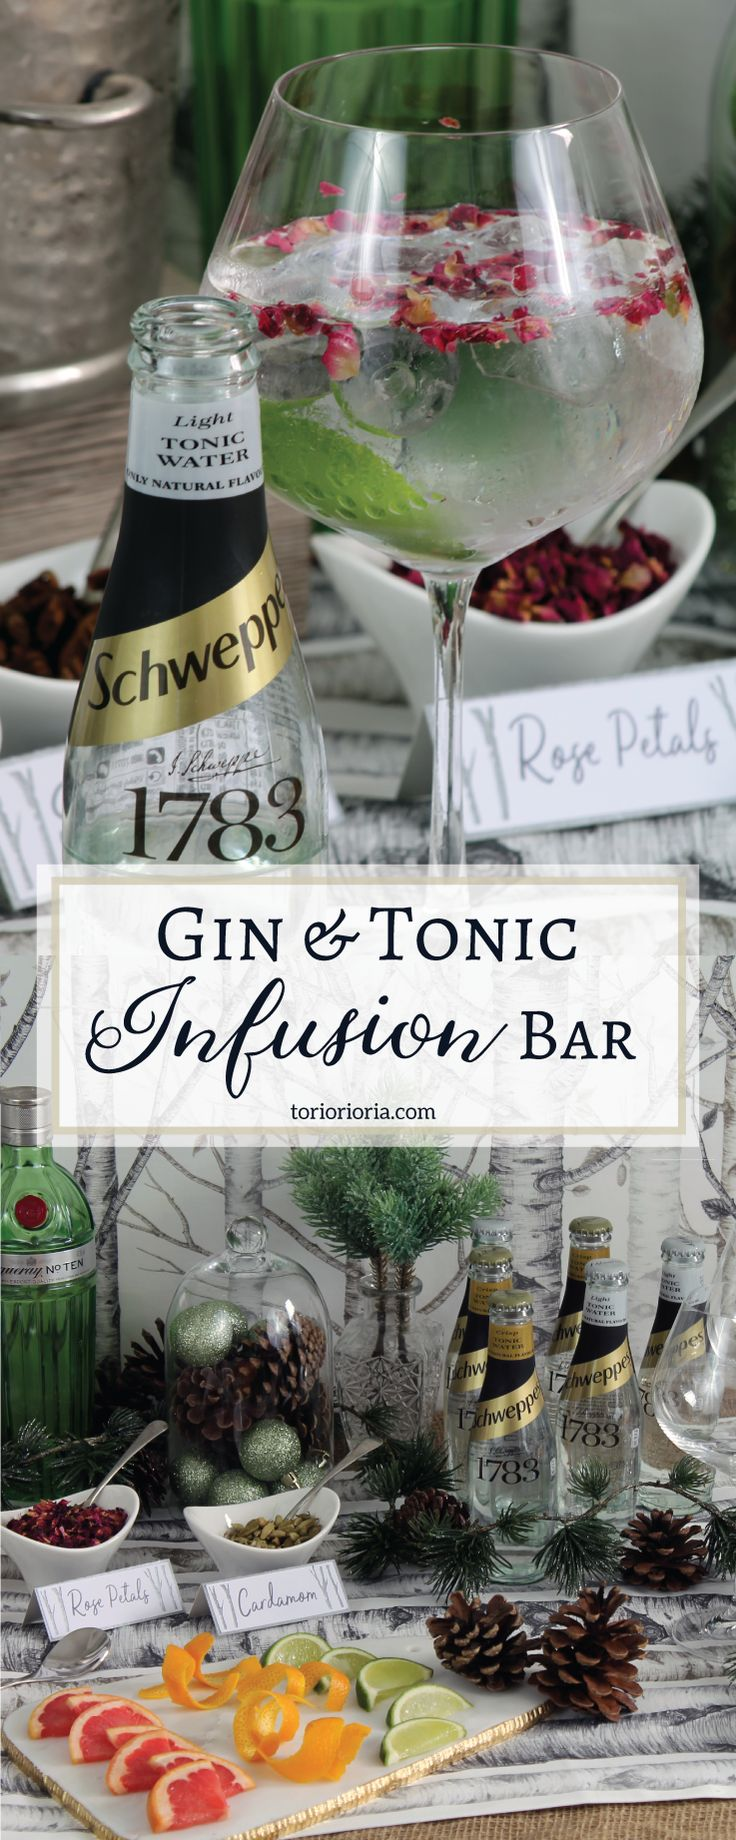 Gin & Tonic Infusion Bar